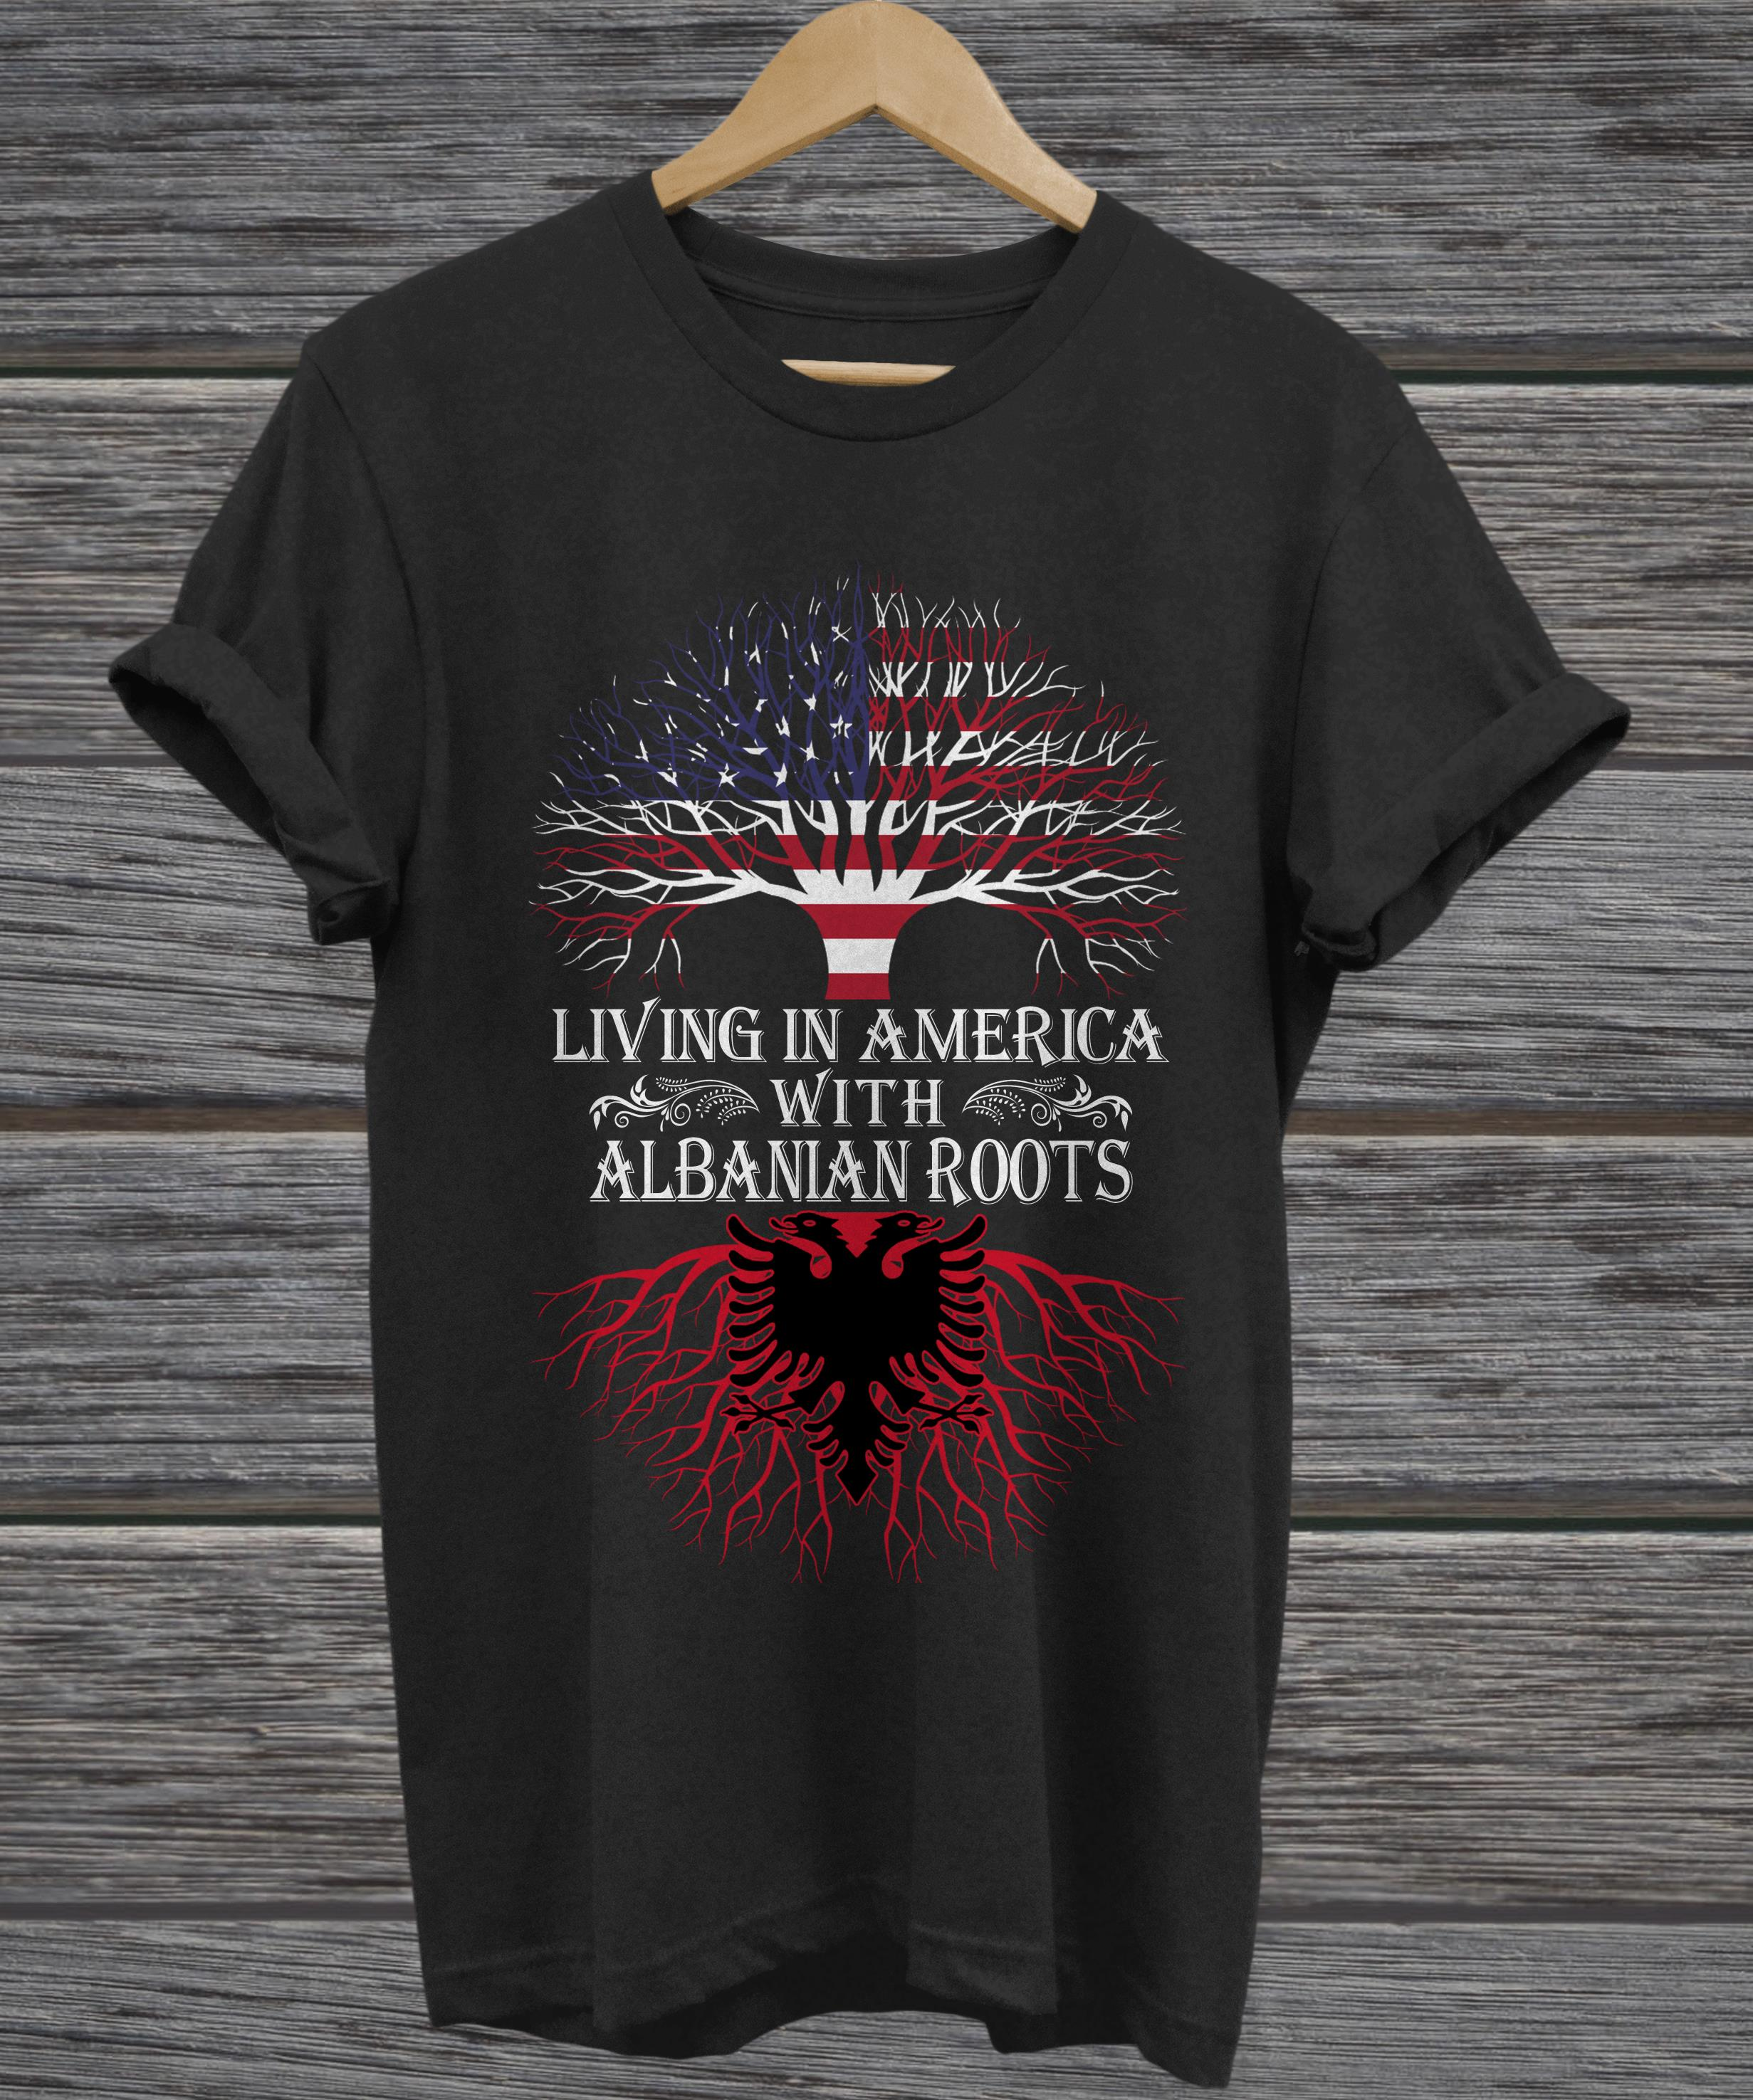 Living in America with Albanian roots hoodie